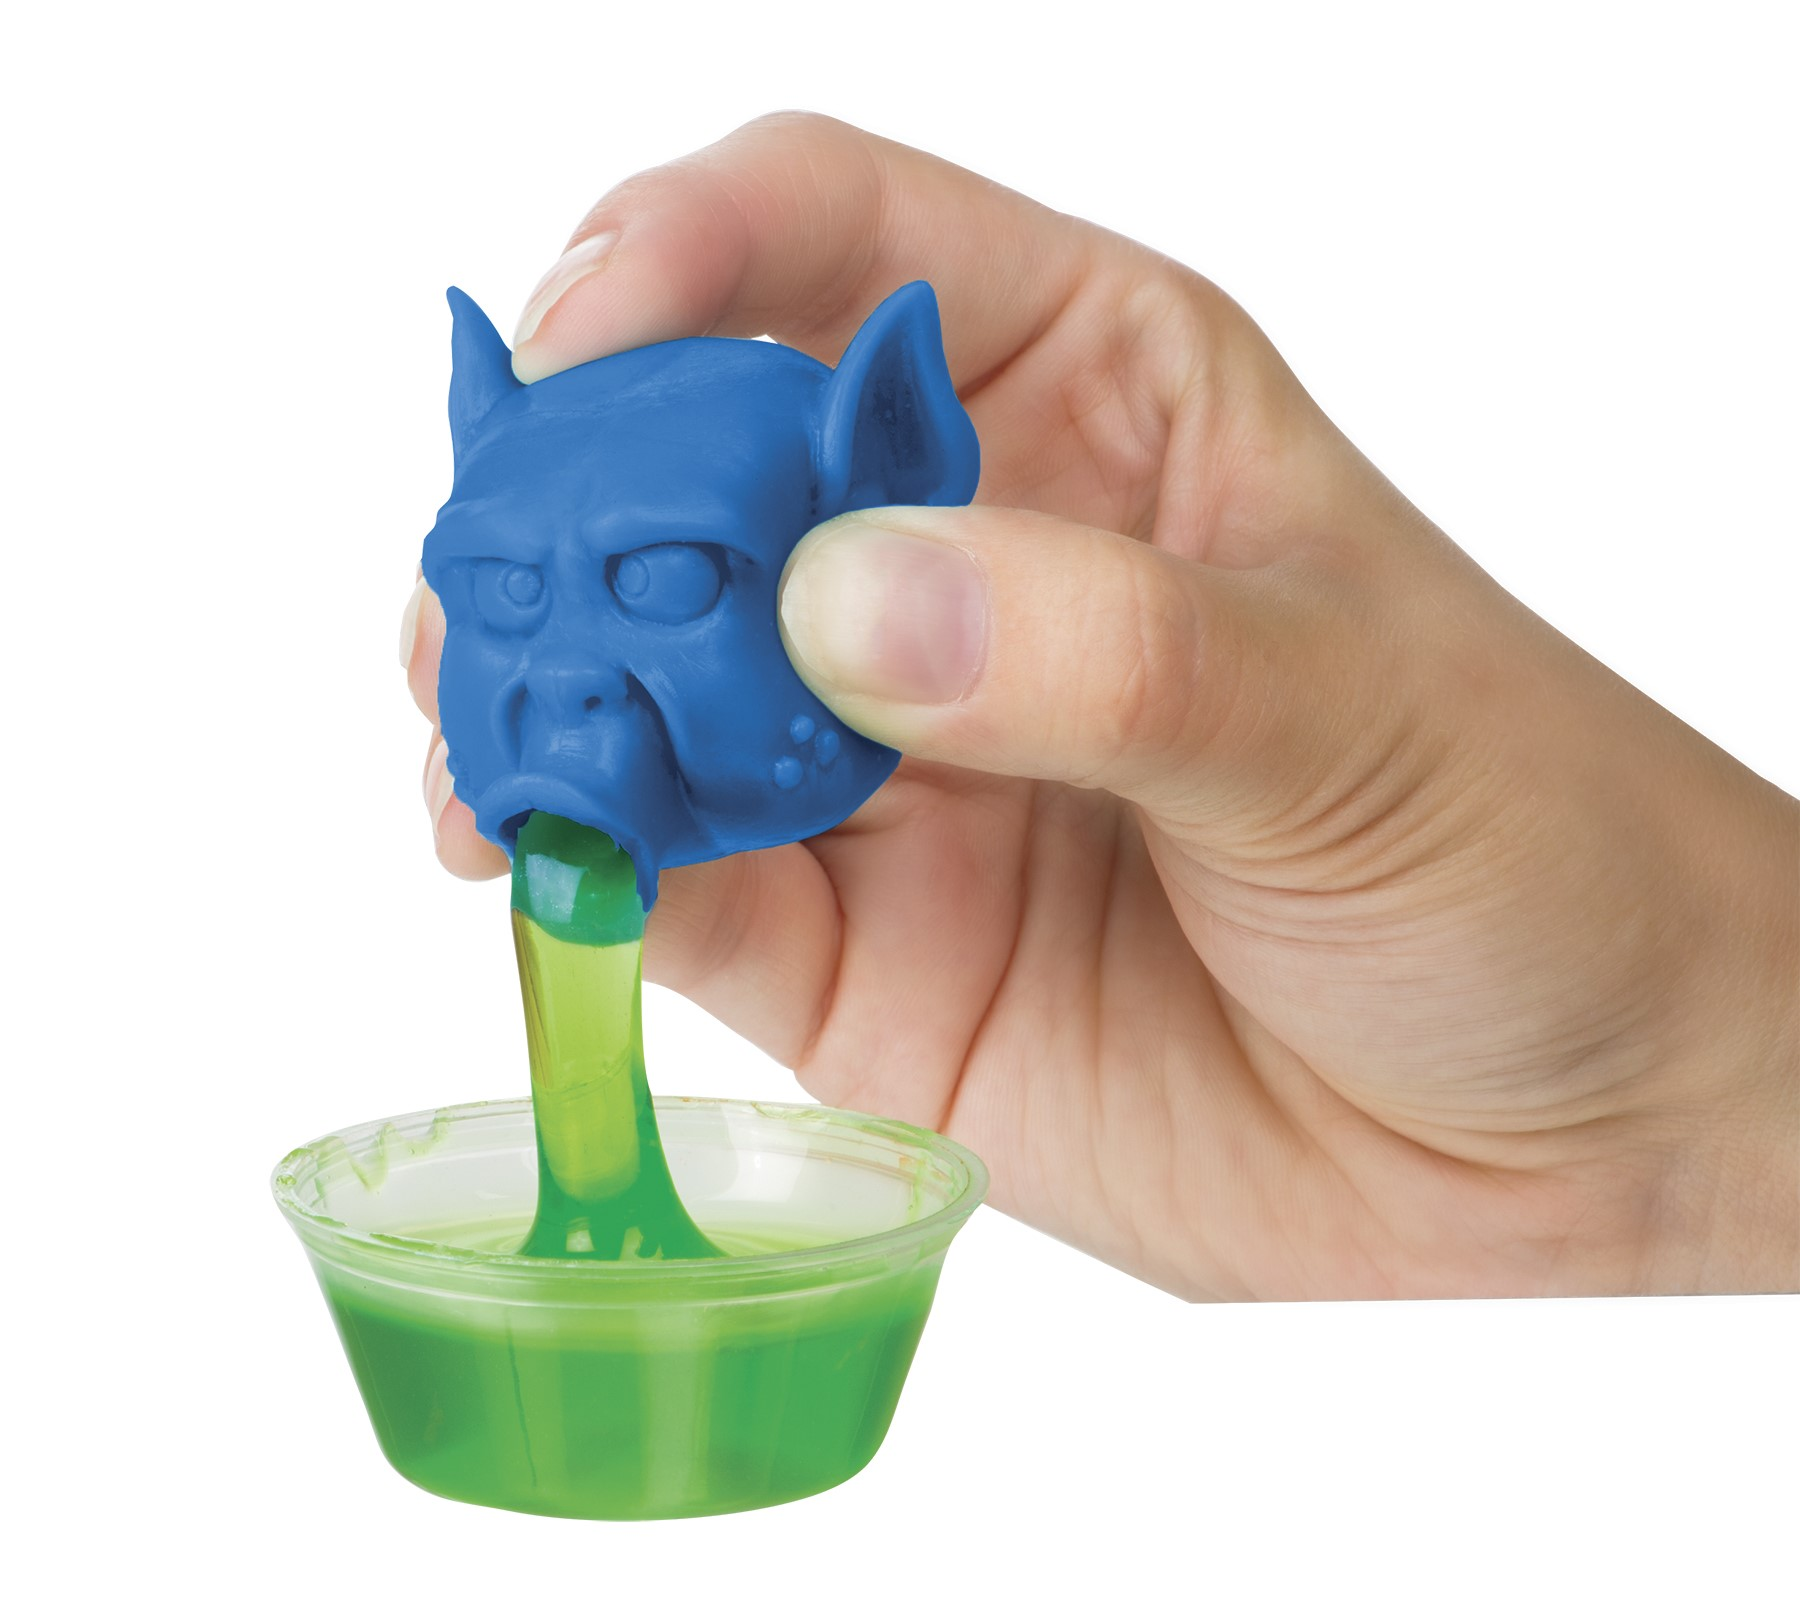 Toysmith Slime Sucker (Image 2 of 2)